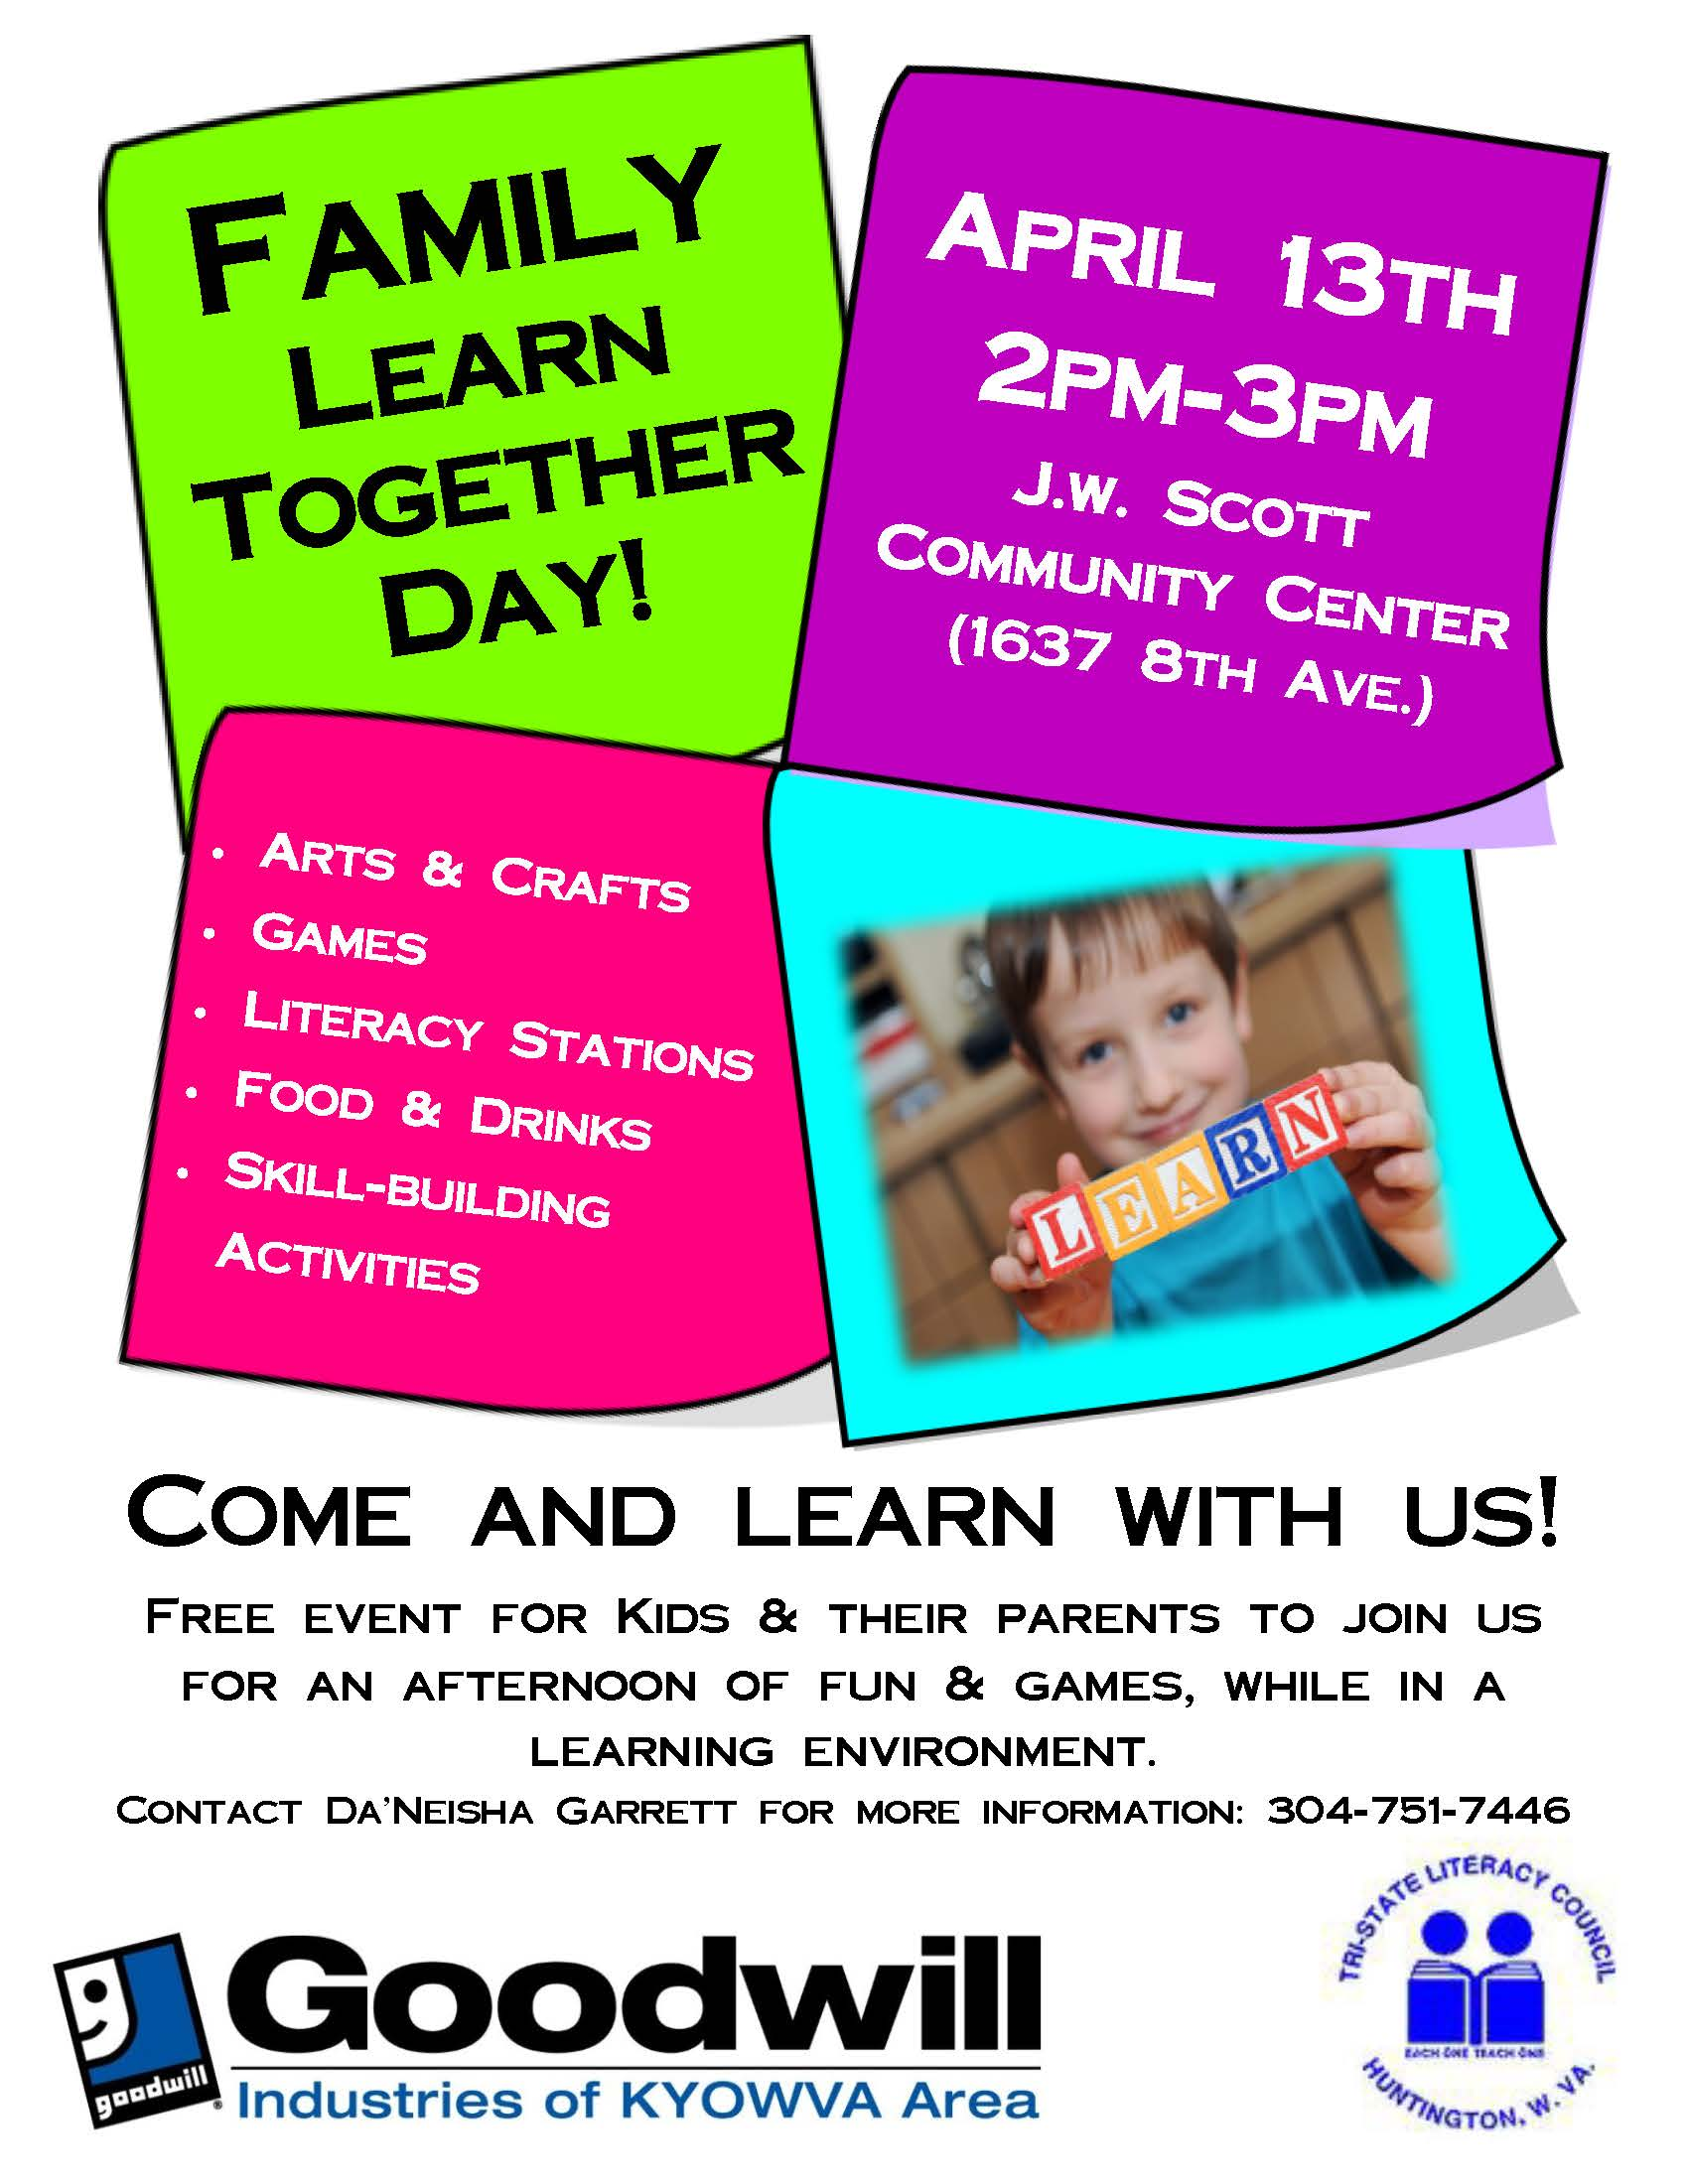 family learn together day scott center 4-13-16